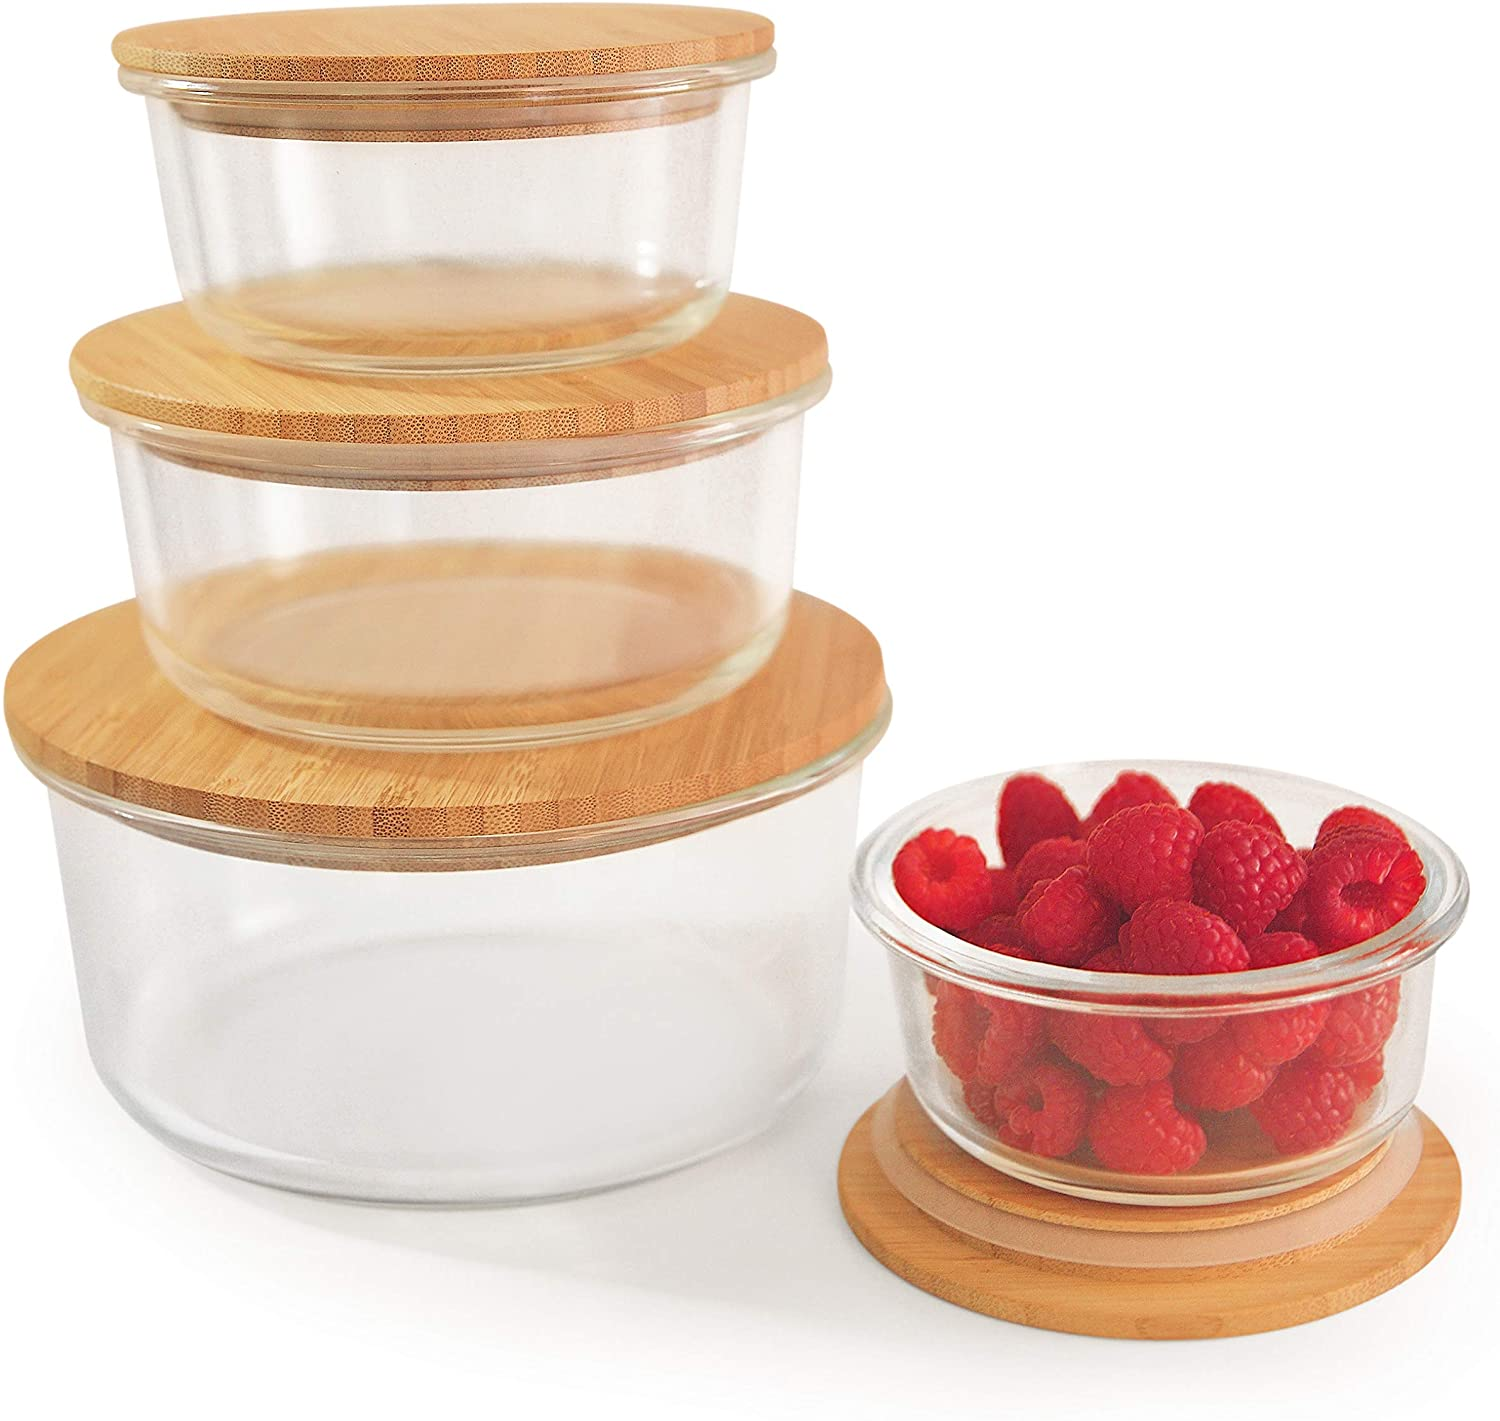 glass storage containers with wooden lid